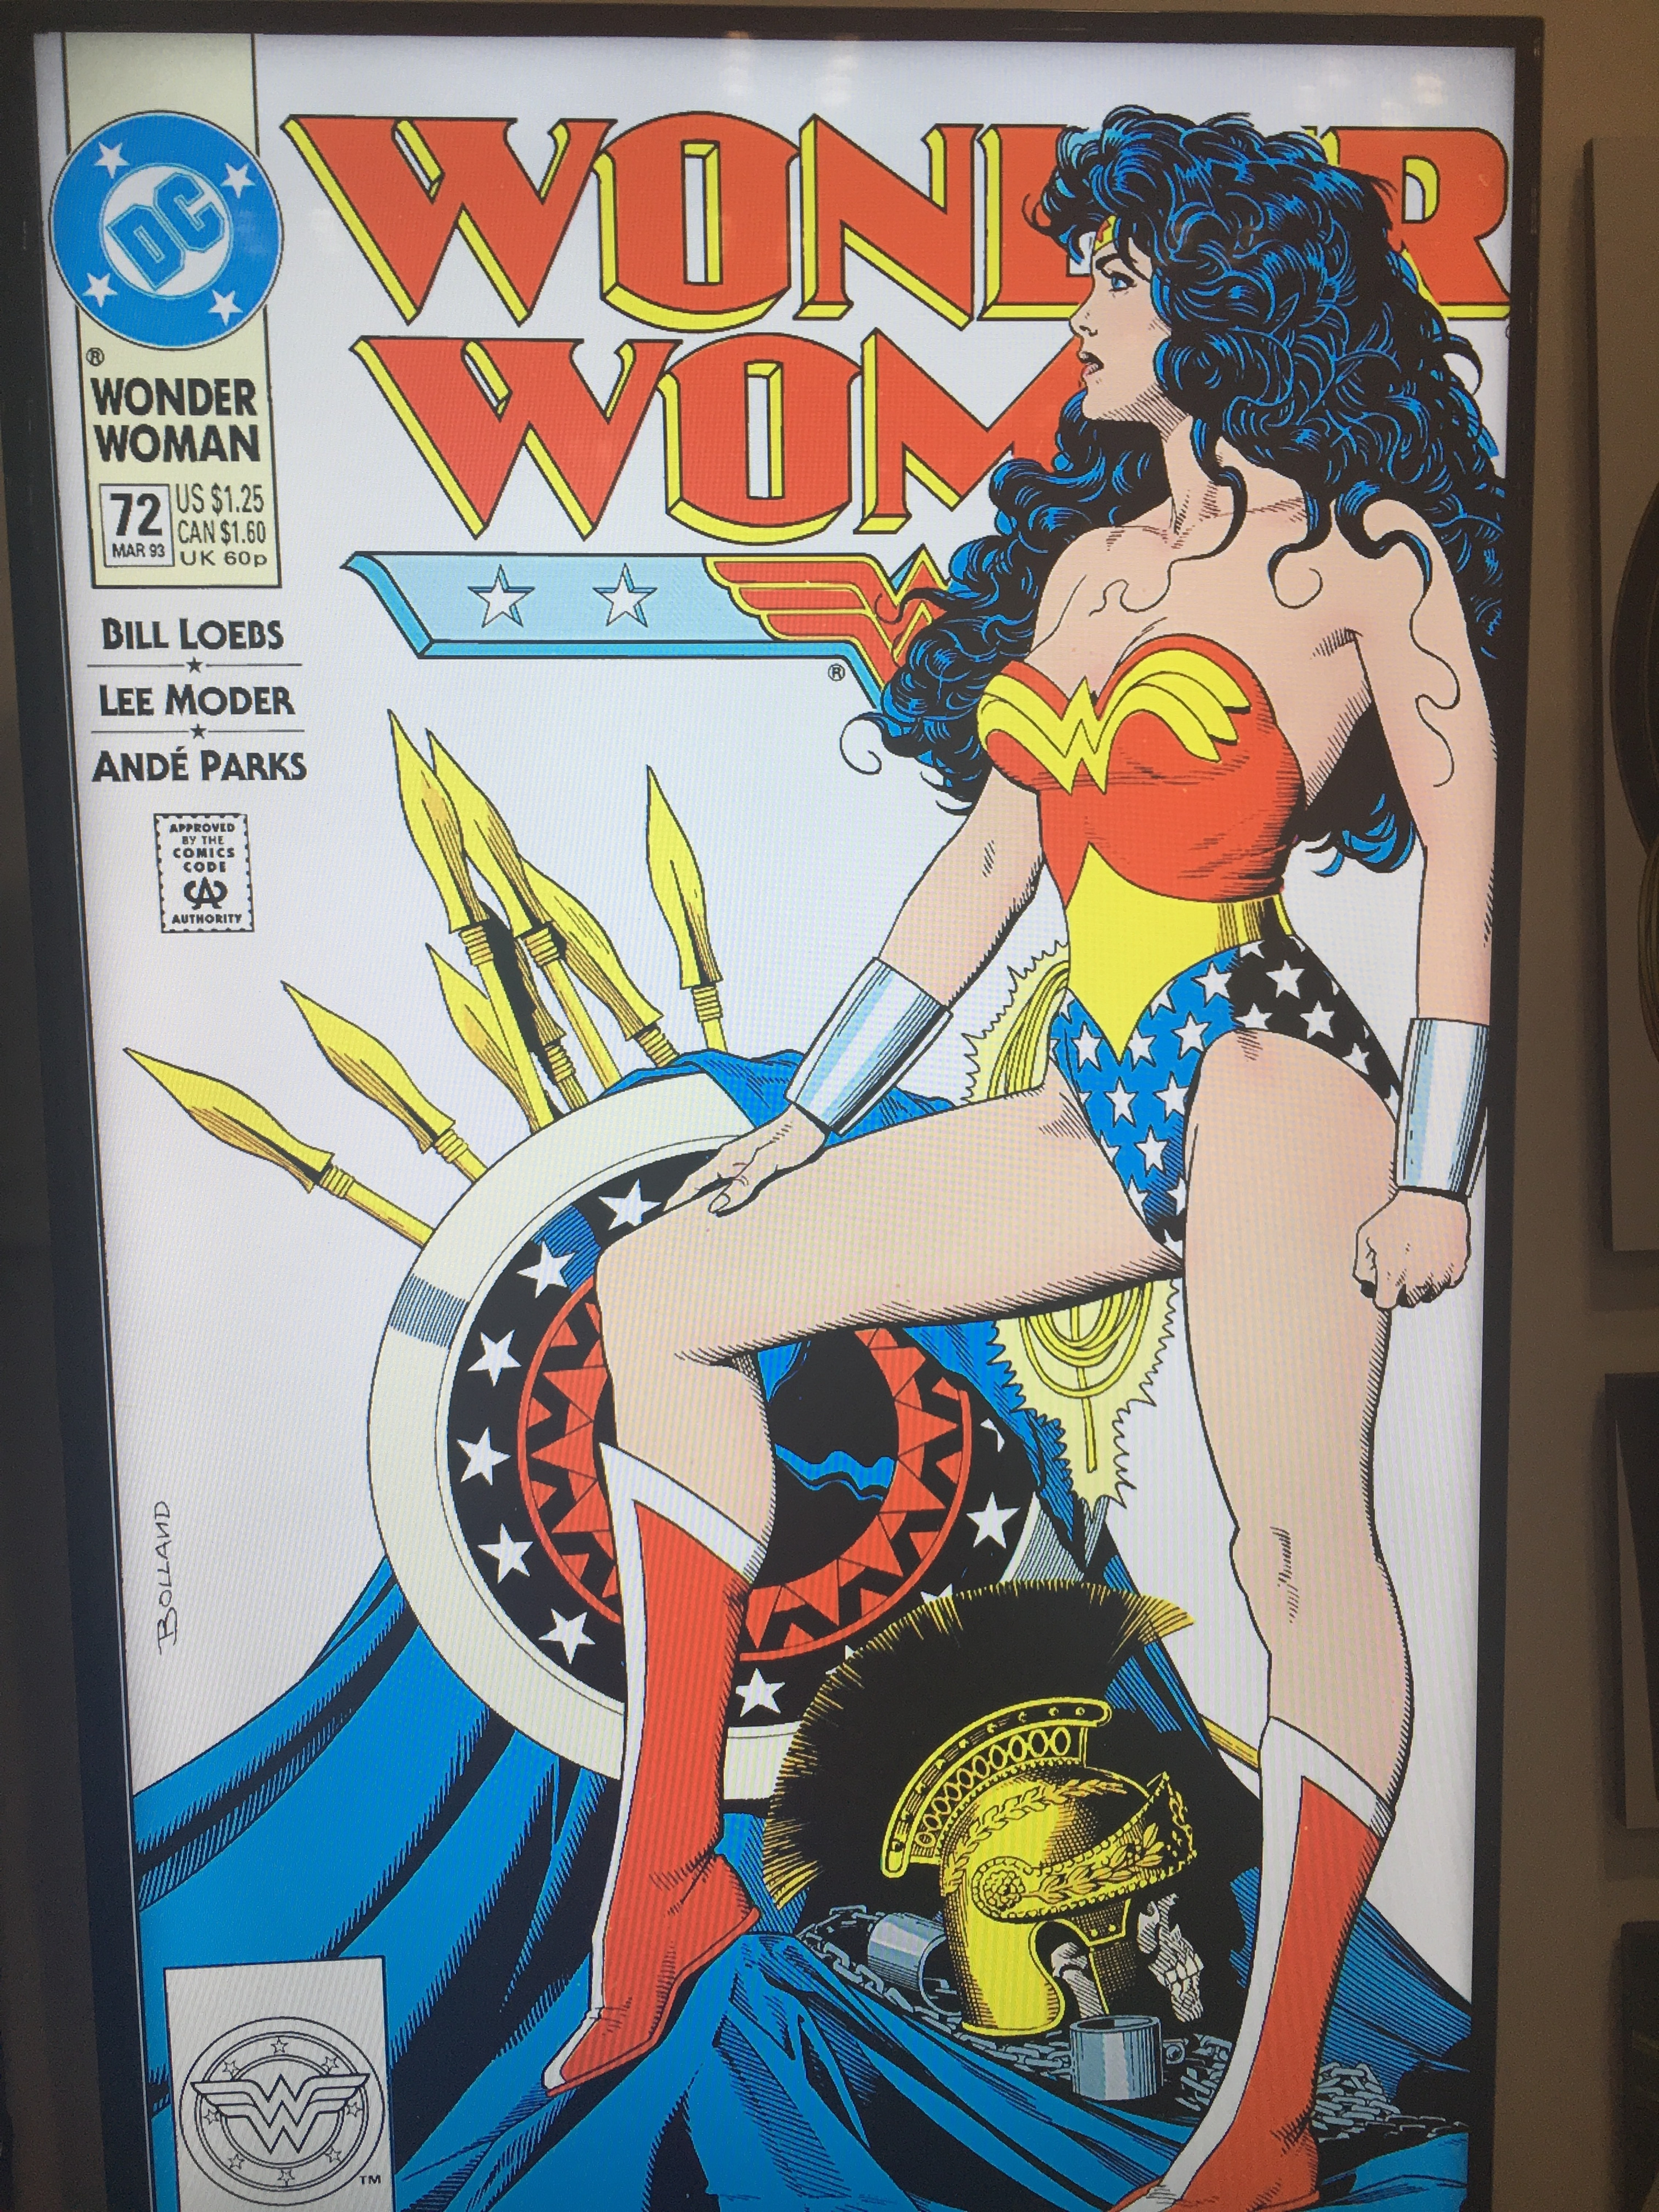 Iconic Wonder Woman artwork was also on display at the dedication.